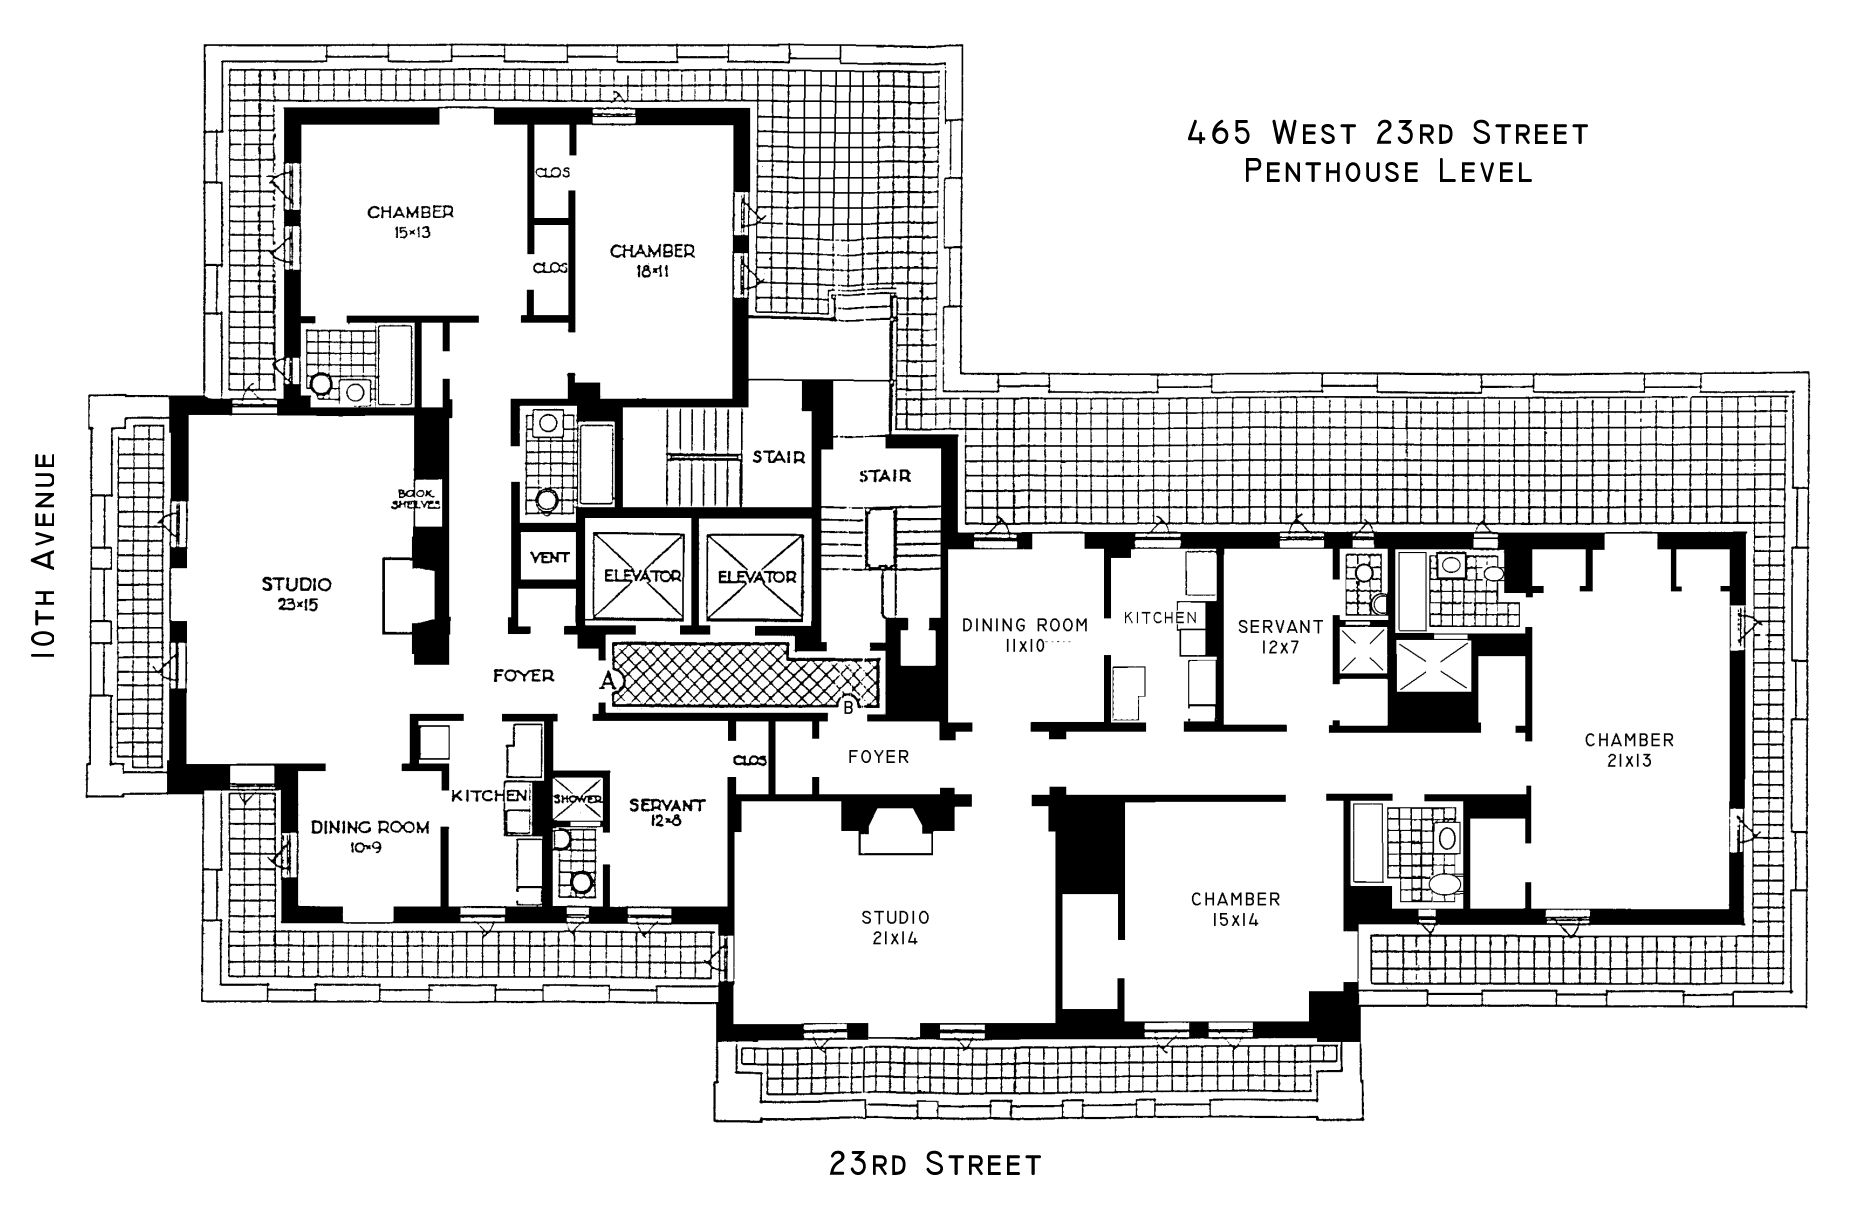 London terrace towers floorplans new york usa for Apartment floor plans new york